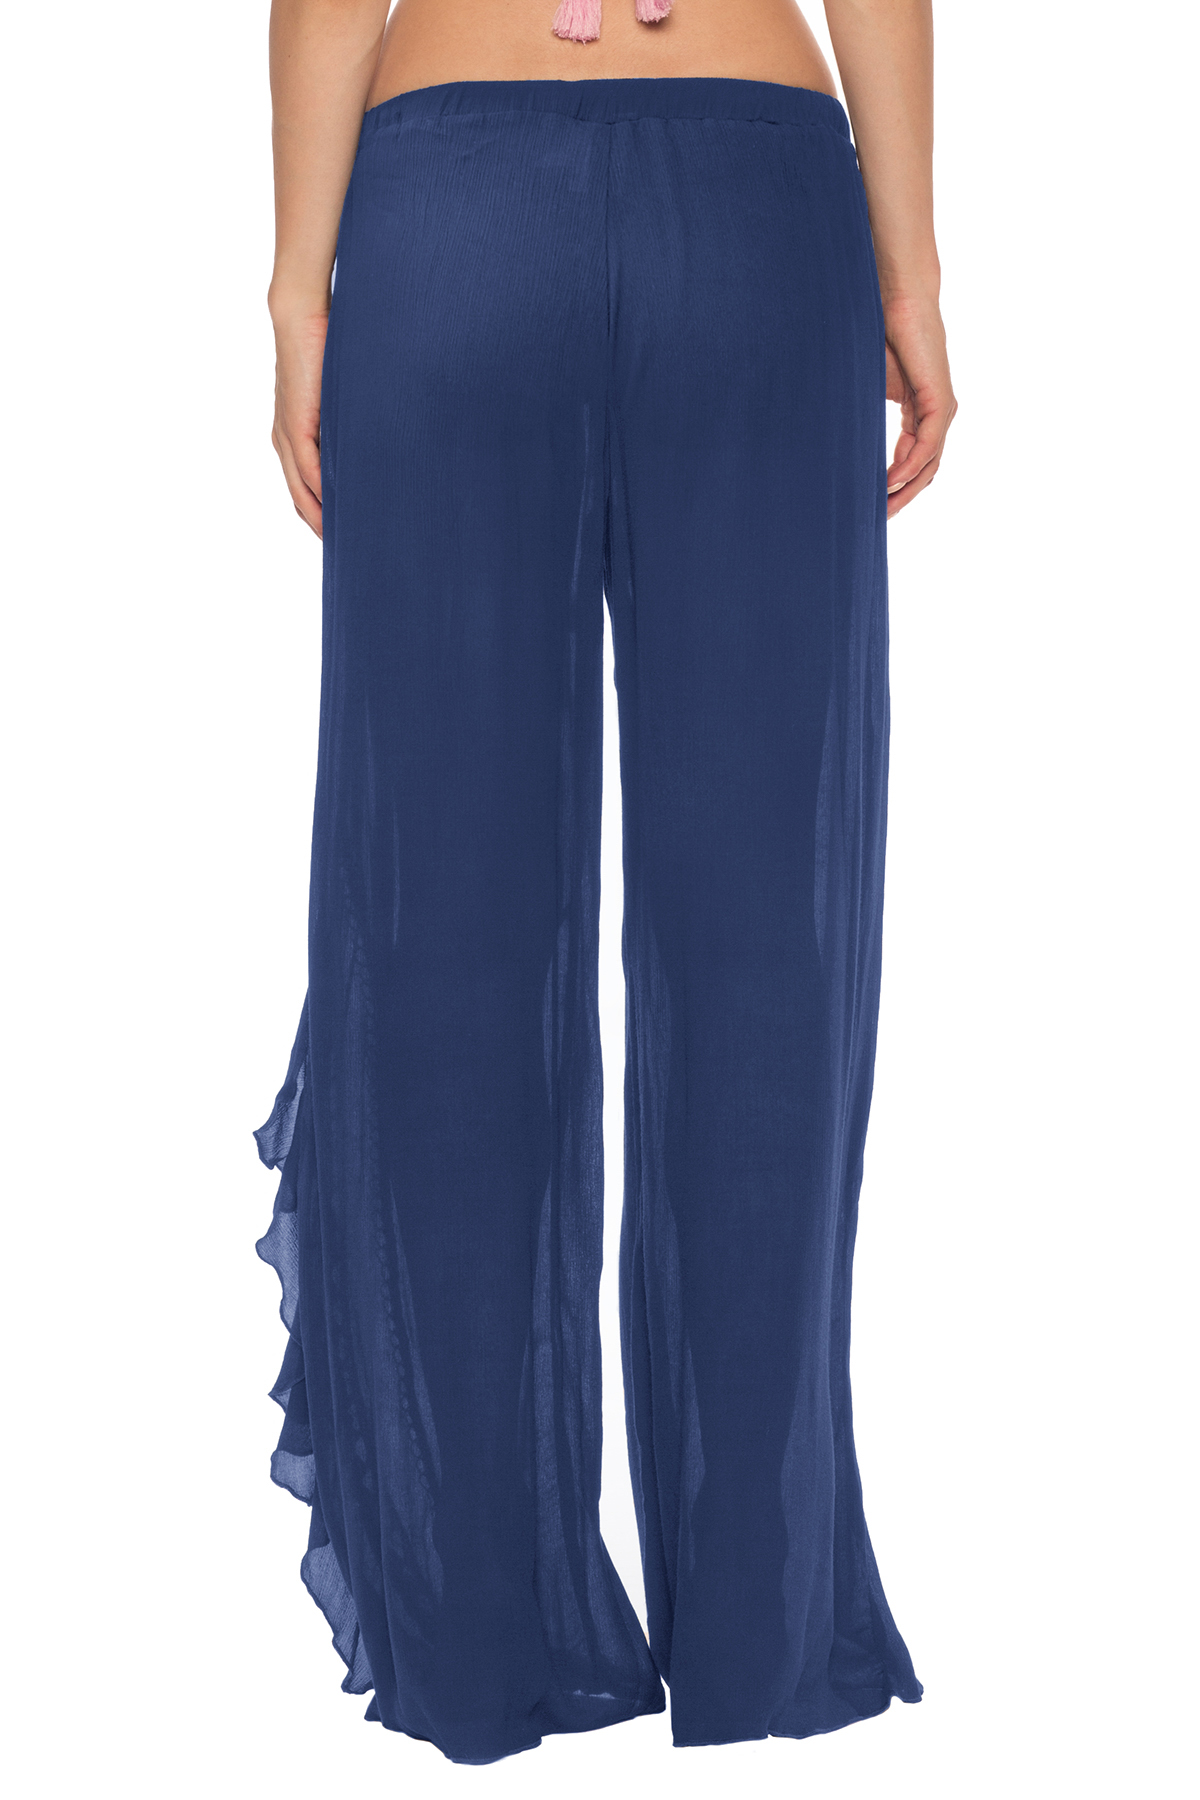 Rickrack Cover Pants - Navy 2